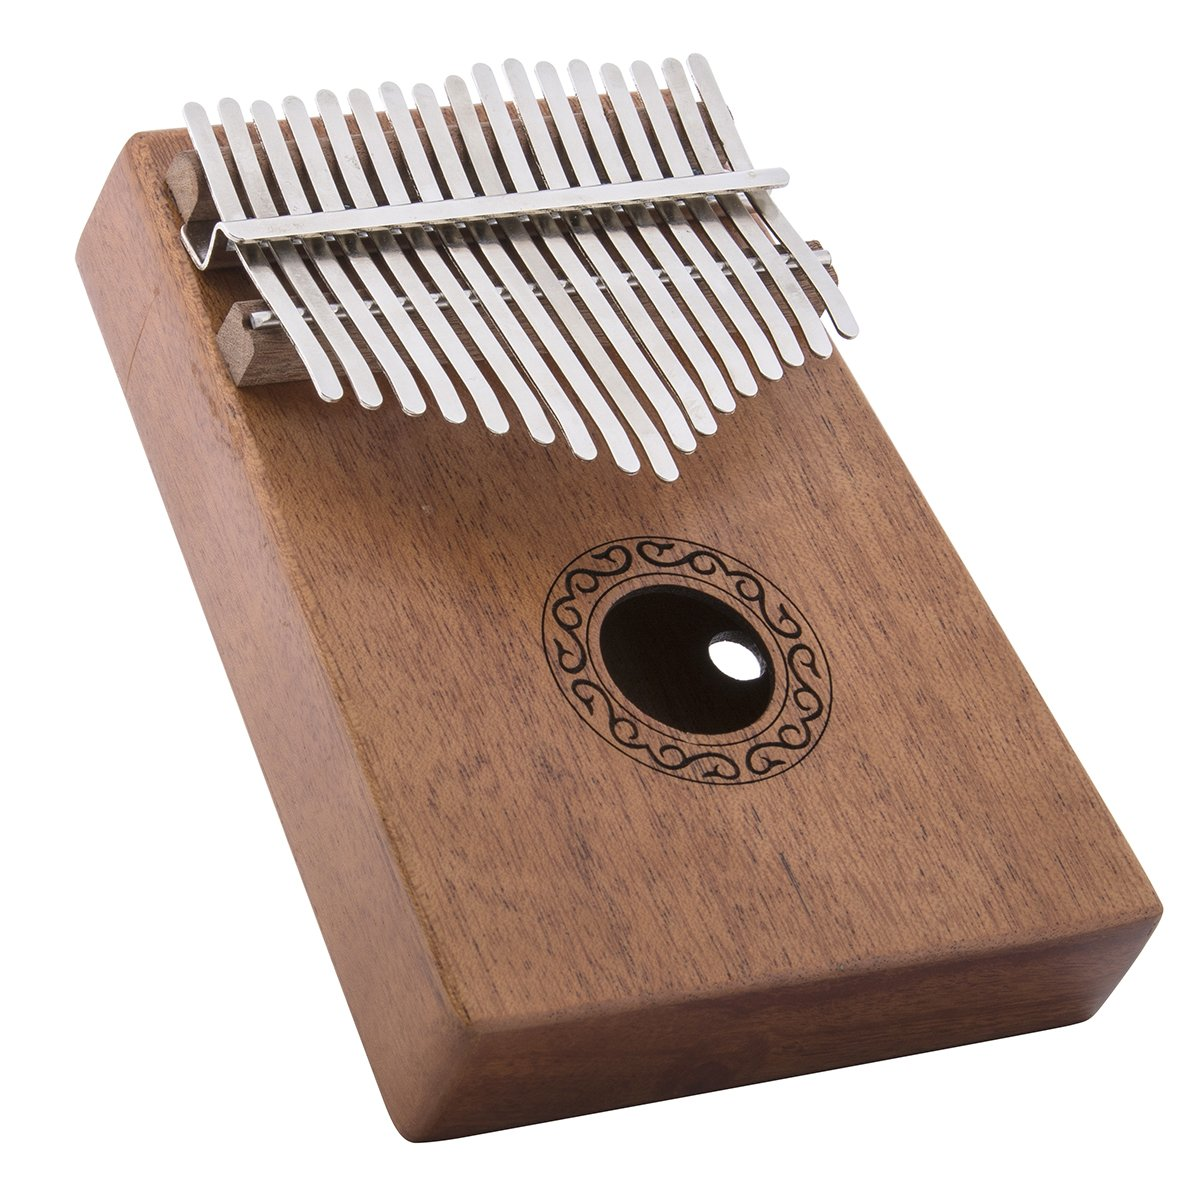 Deekec 17 key Kalimba Thumb Piano with Instruction and Tuner Hammer, Portable Mahogany Body ¡­